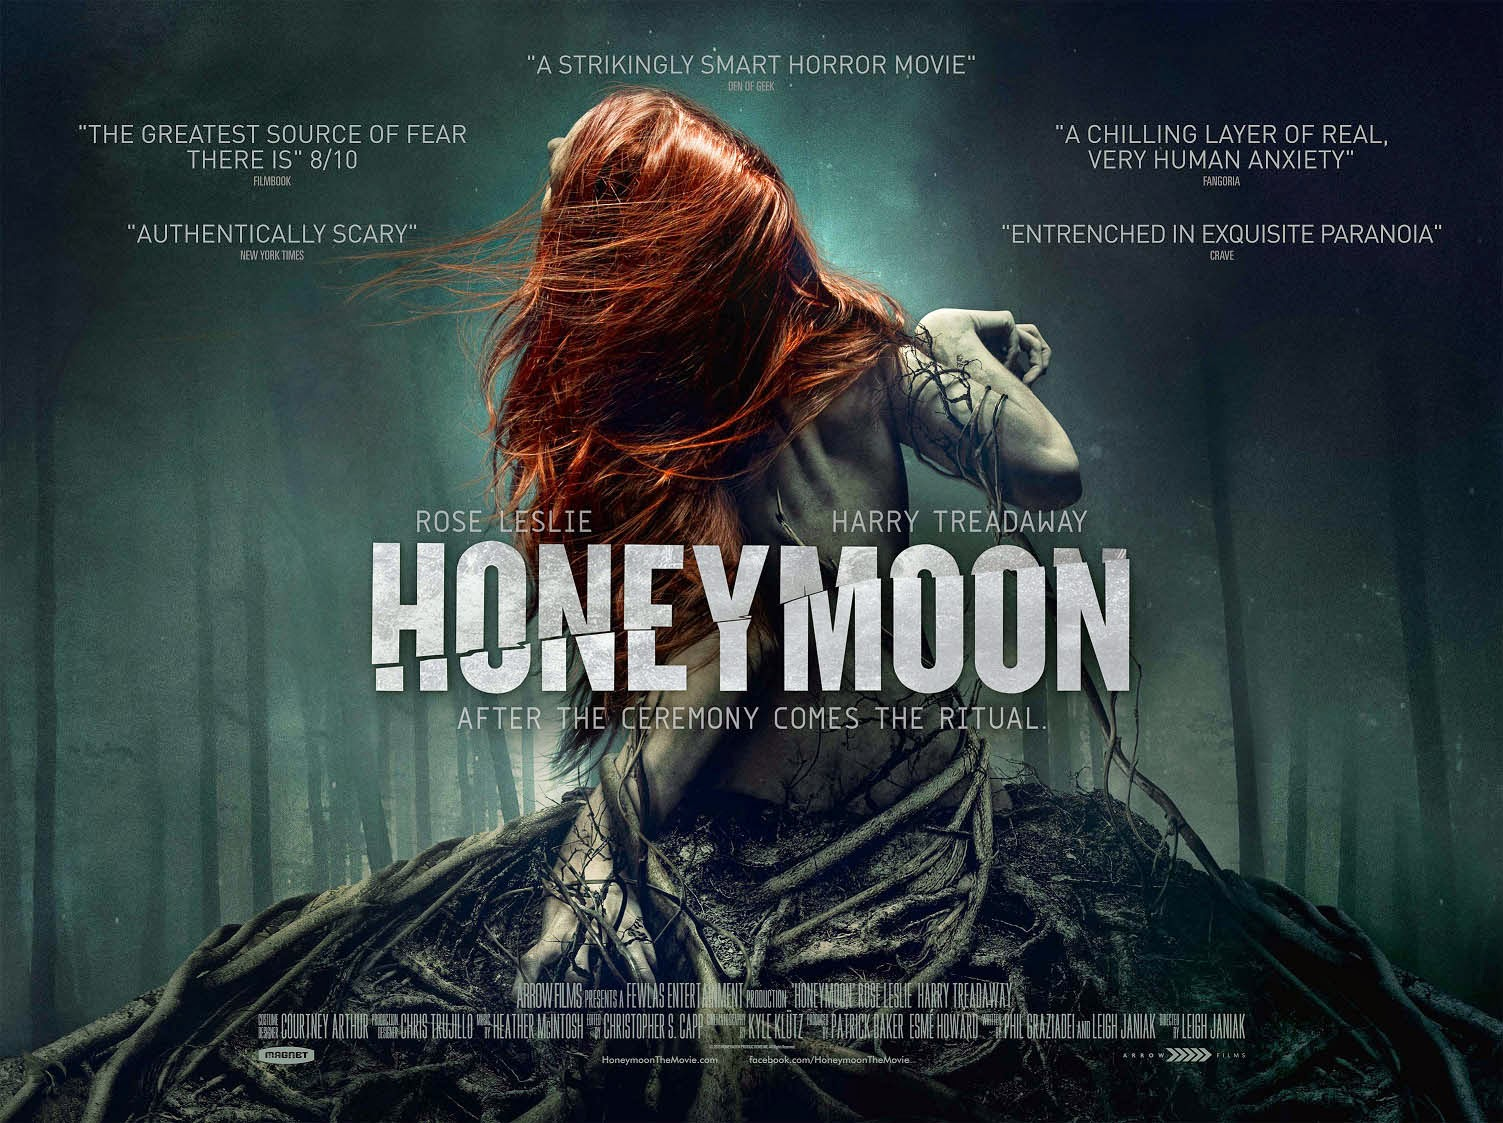 honeymoon-movie-poster-2